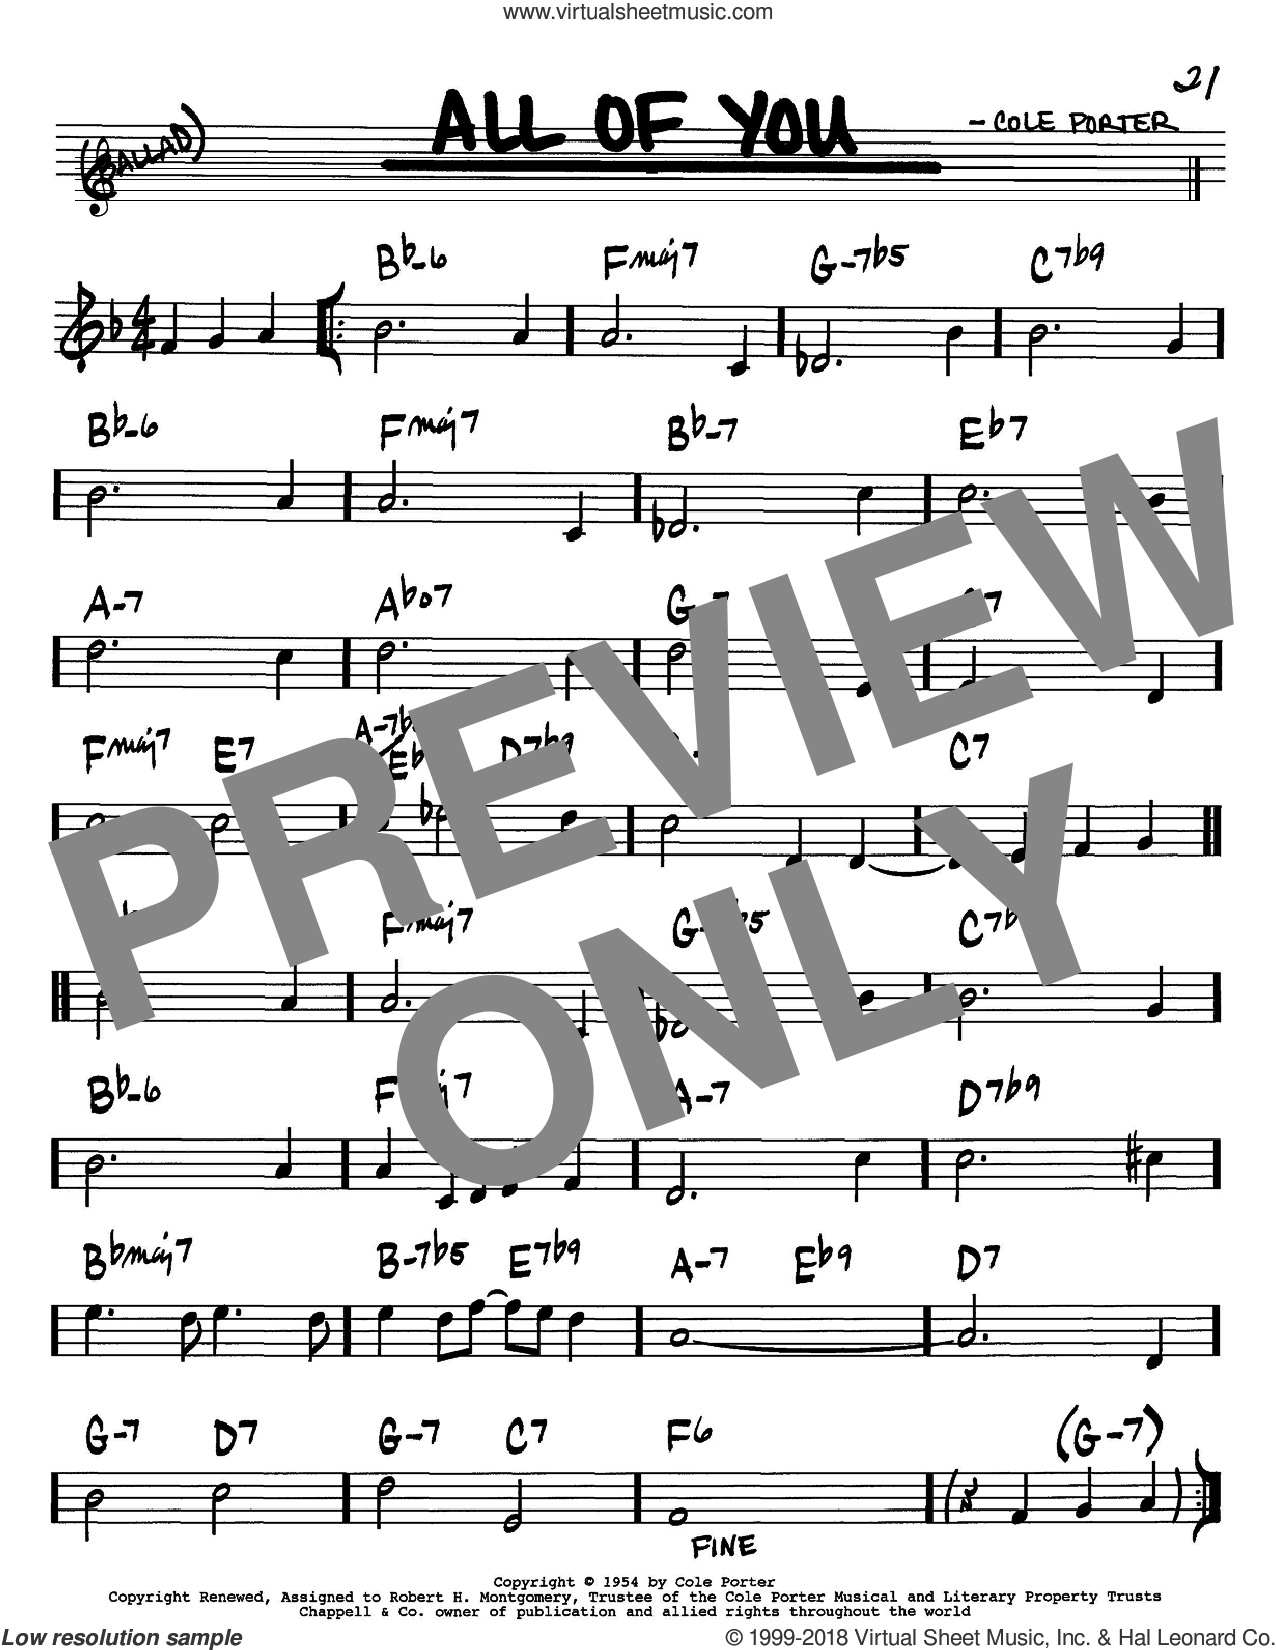 All Of You sheet music for voice and other instruments (Bb) by Cole Porter